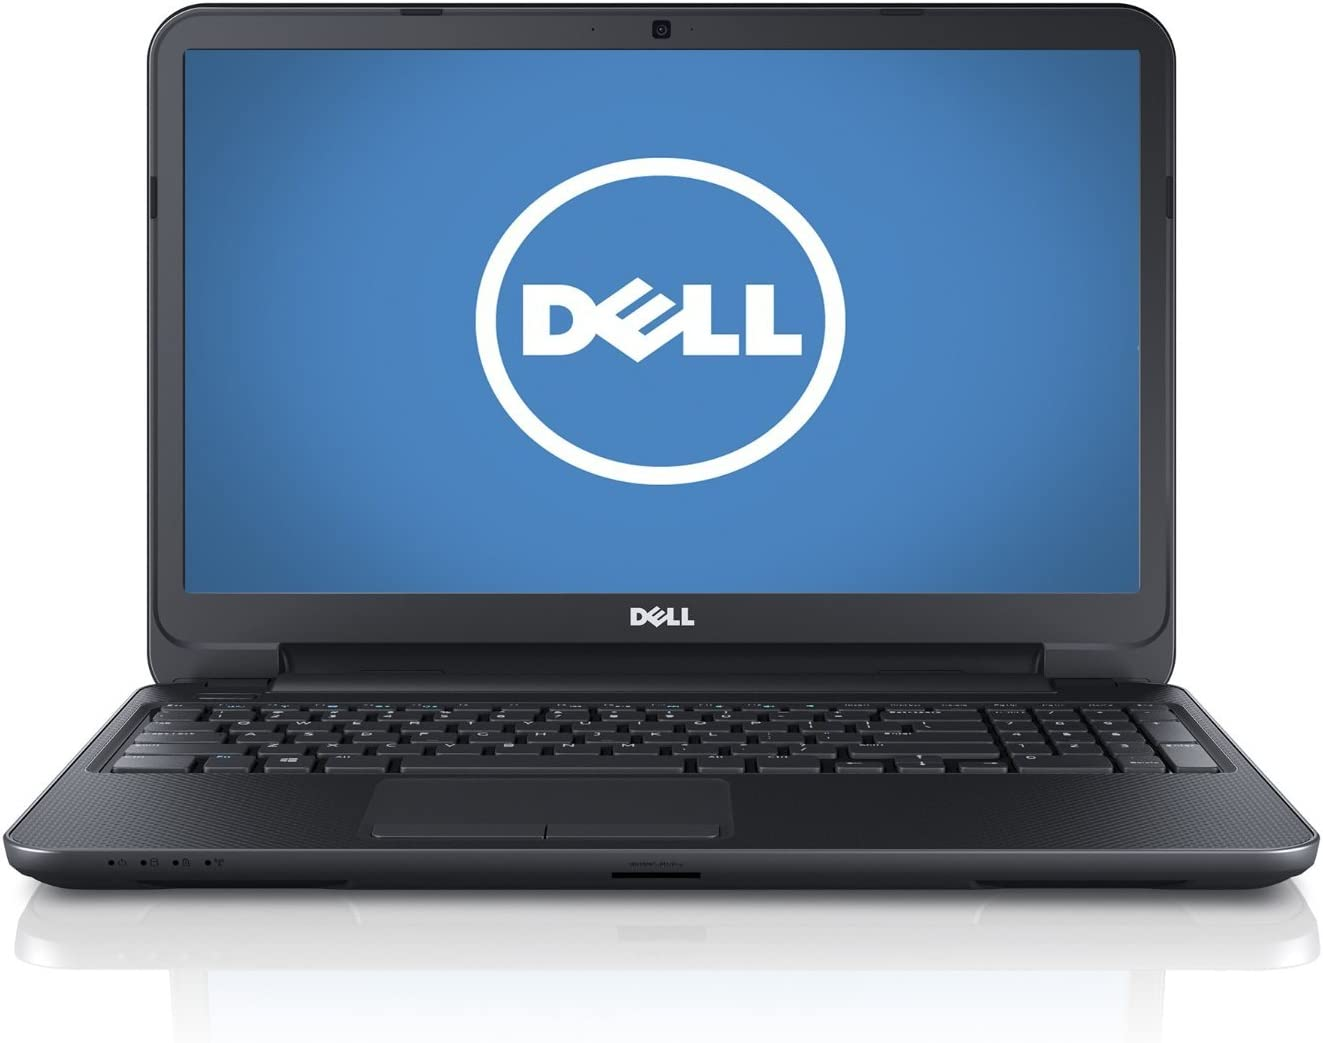 Dell Inspiron 15 i15RV-1434BLK 15.6-Inch Laptop (Black)